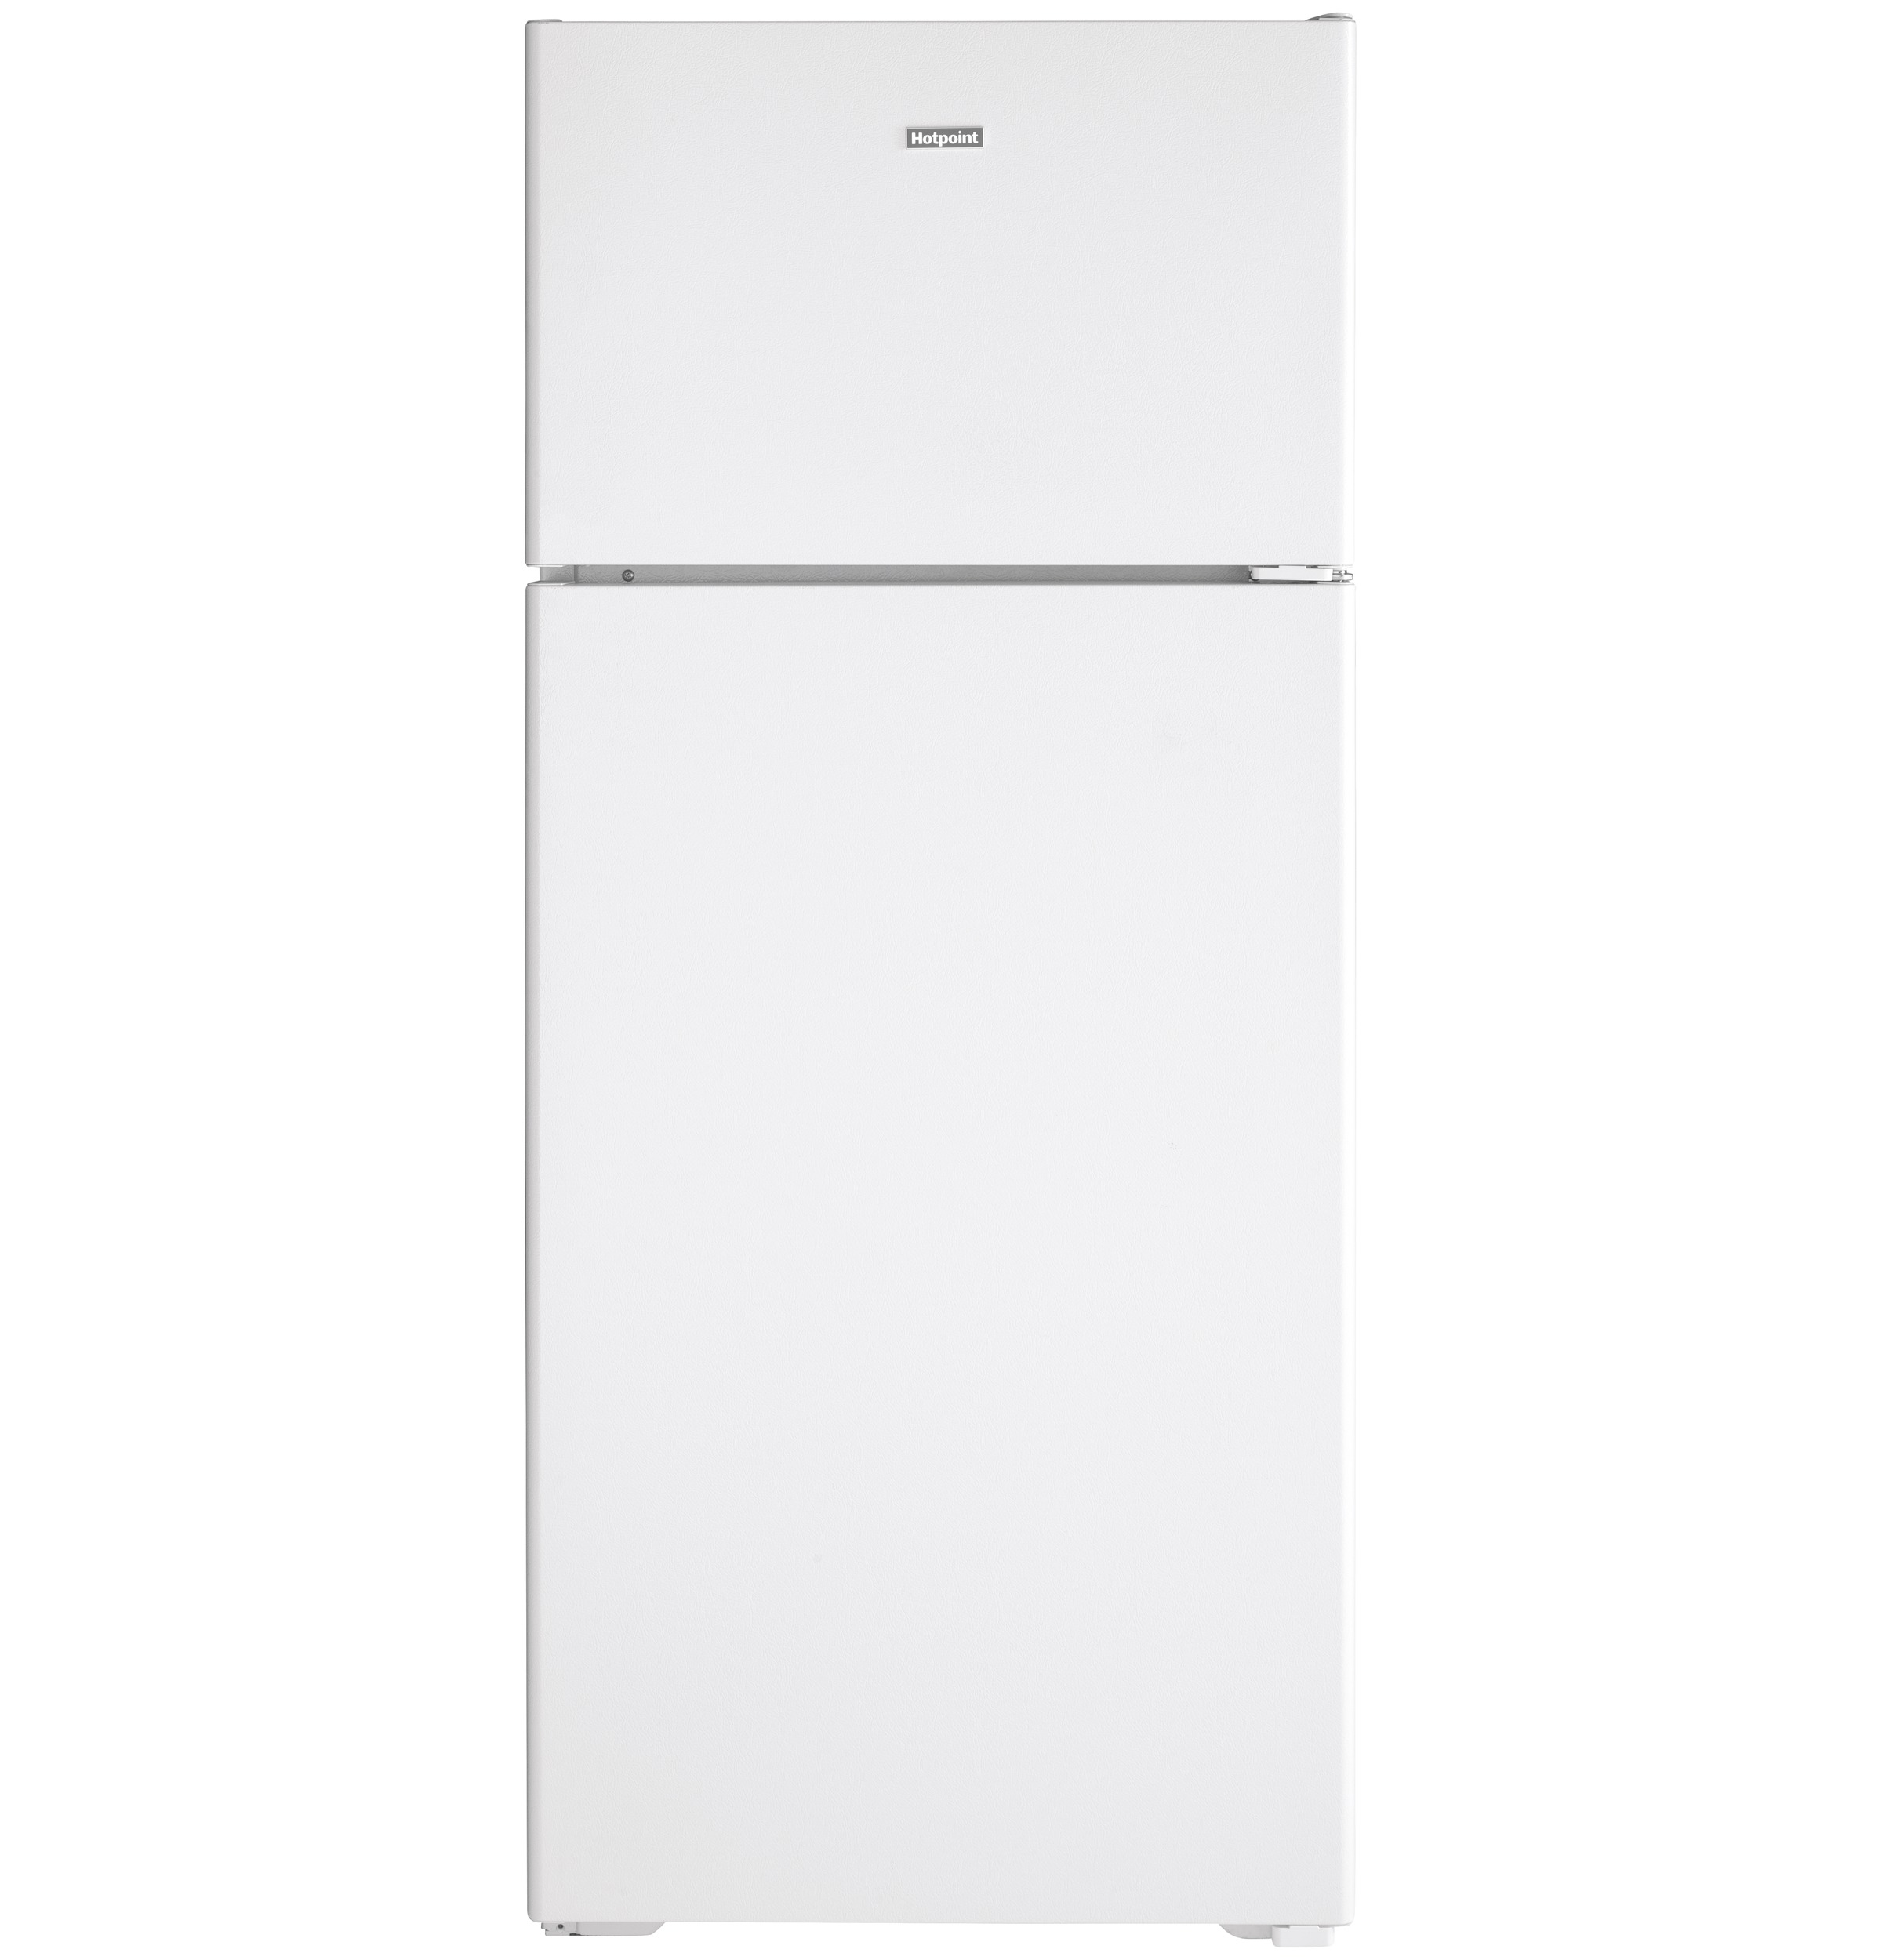 Model: HPS18BTNRWW | Hotpoint Hotpoint® 17.5 Cu. Ft. Recessed Handle Top-Freezer Refrigerator